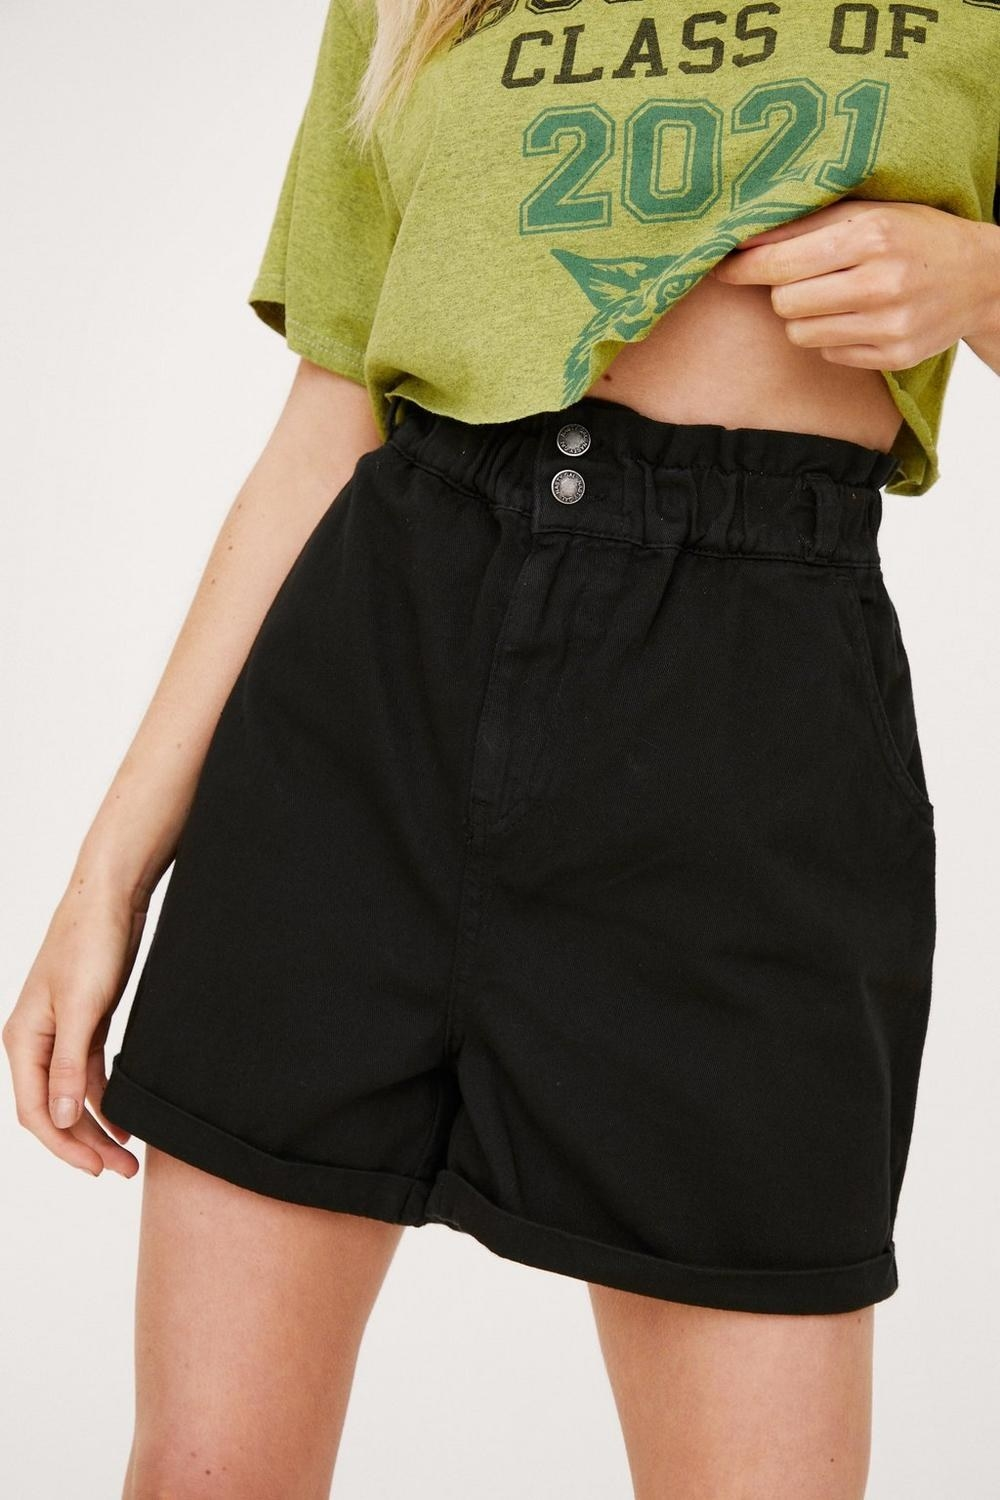 A pair of high waisted shorts that cinch at the waist